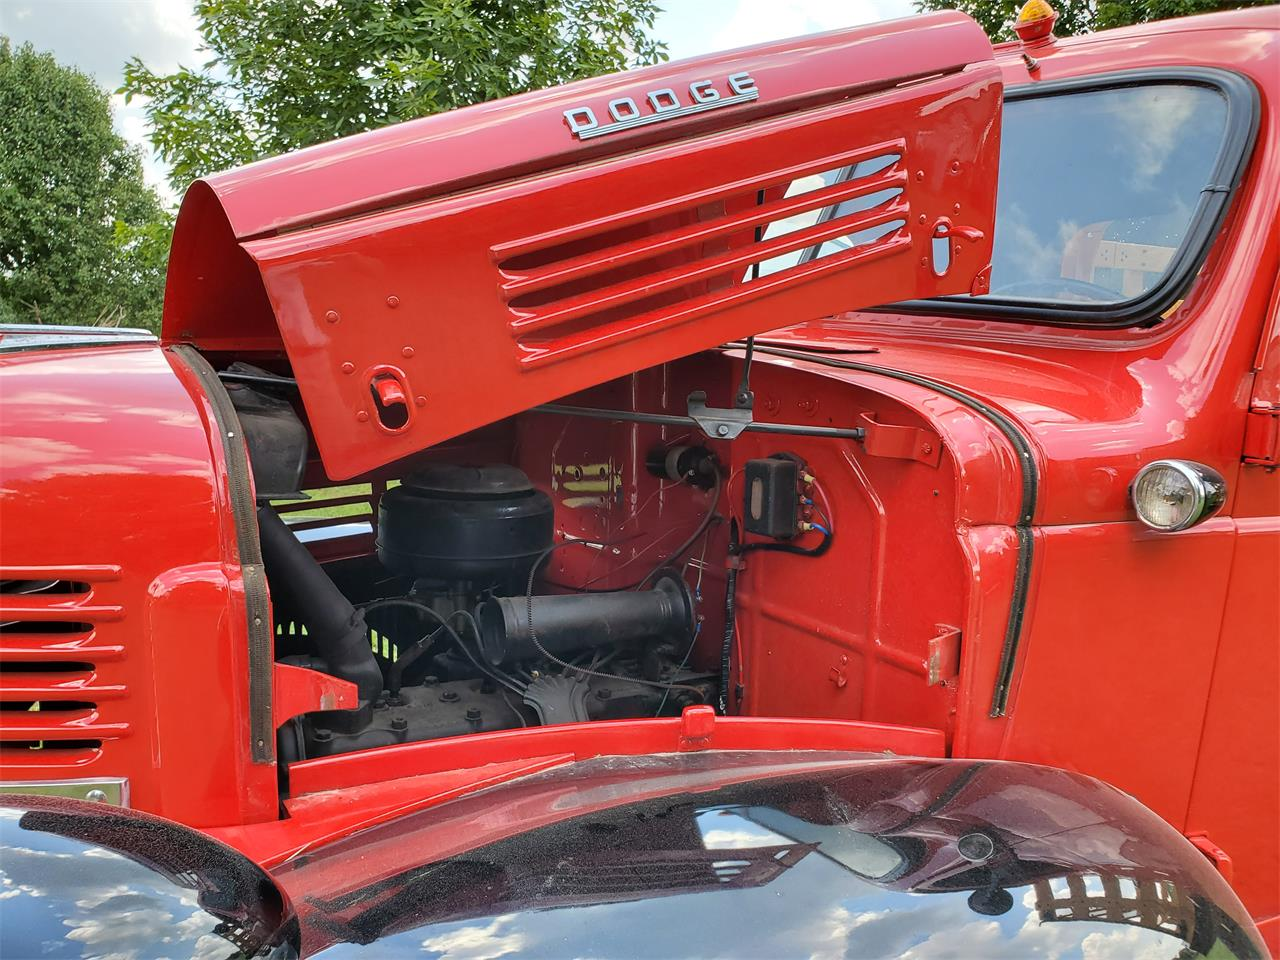 Large Picture of 1946 1 Ton Pickup located in Kentucky - $31,500.00 Offered by a Private Seller - QO6R